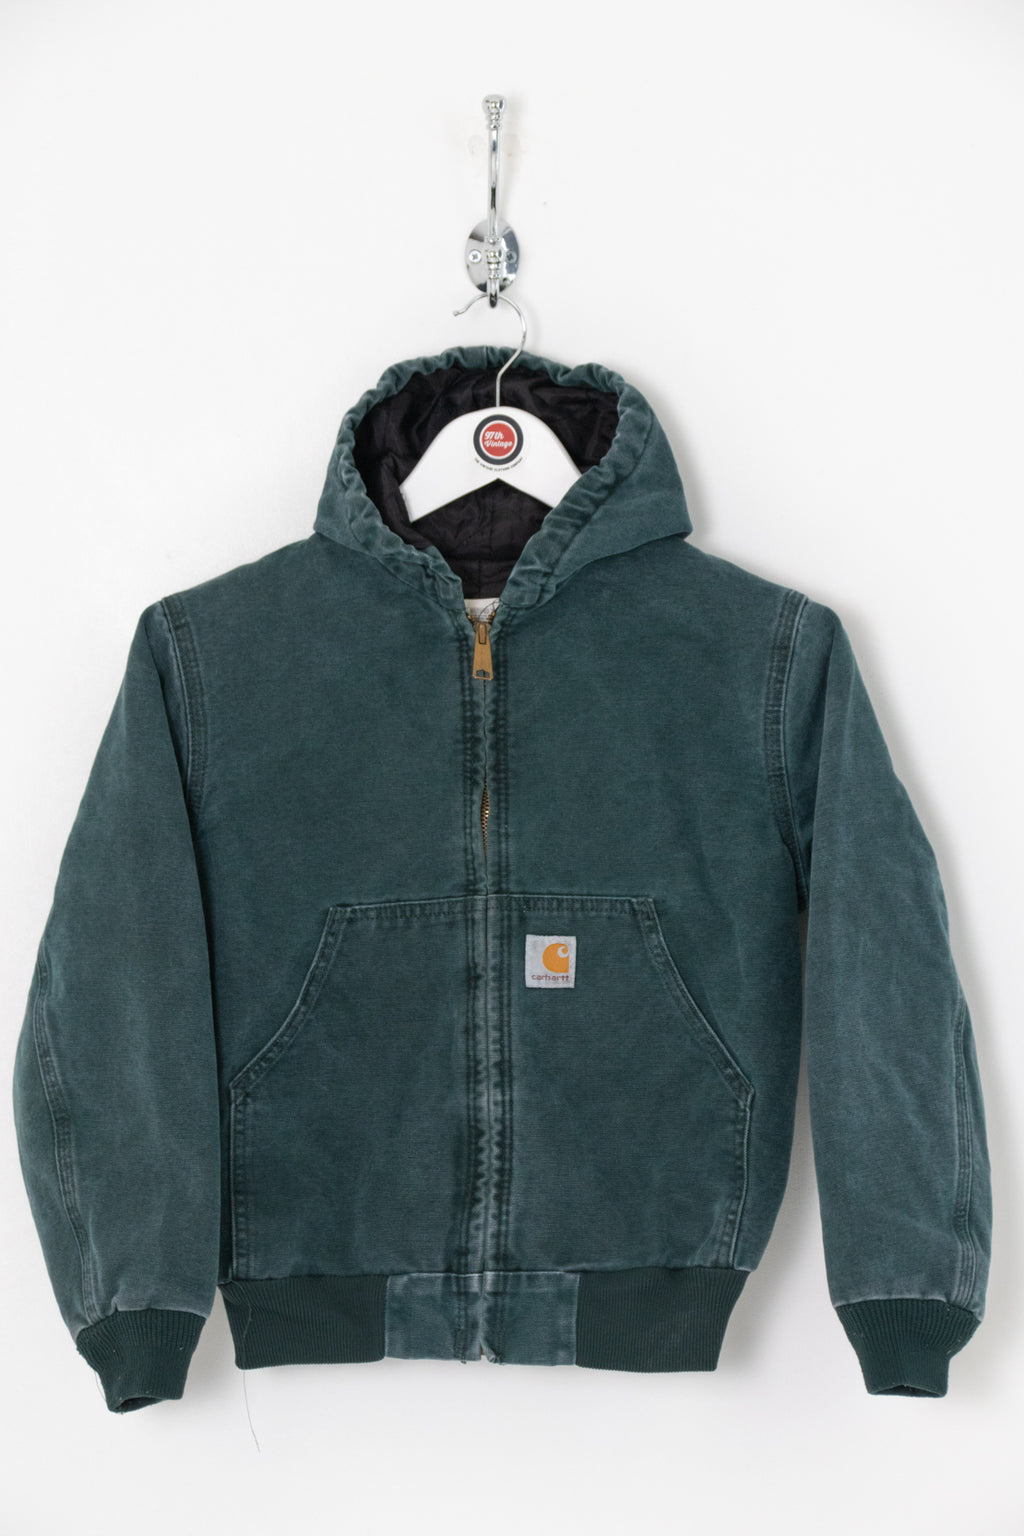 Kids Carhartt Jacket (M)